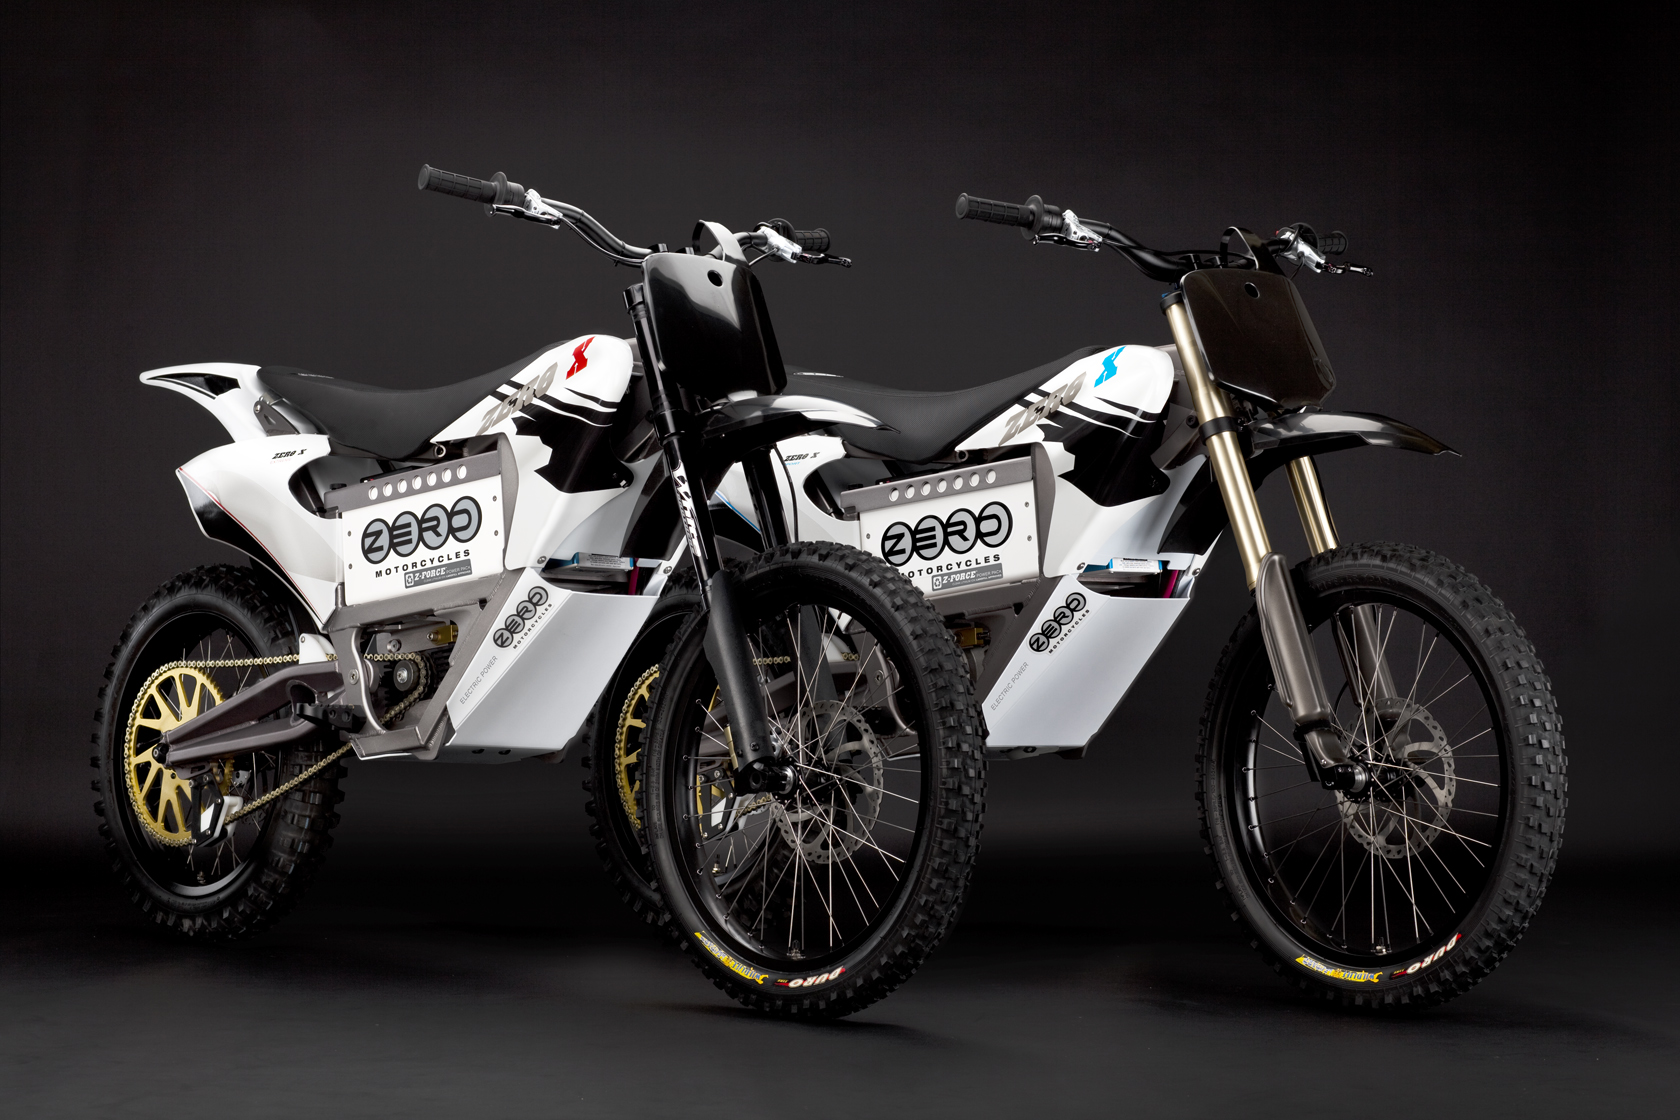 2010 Zero X Electric Motorcycle: Pair